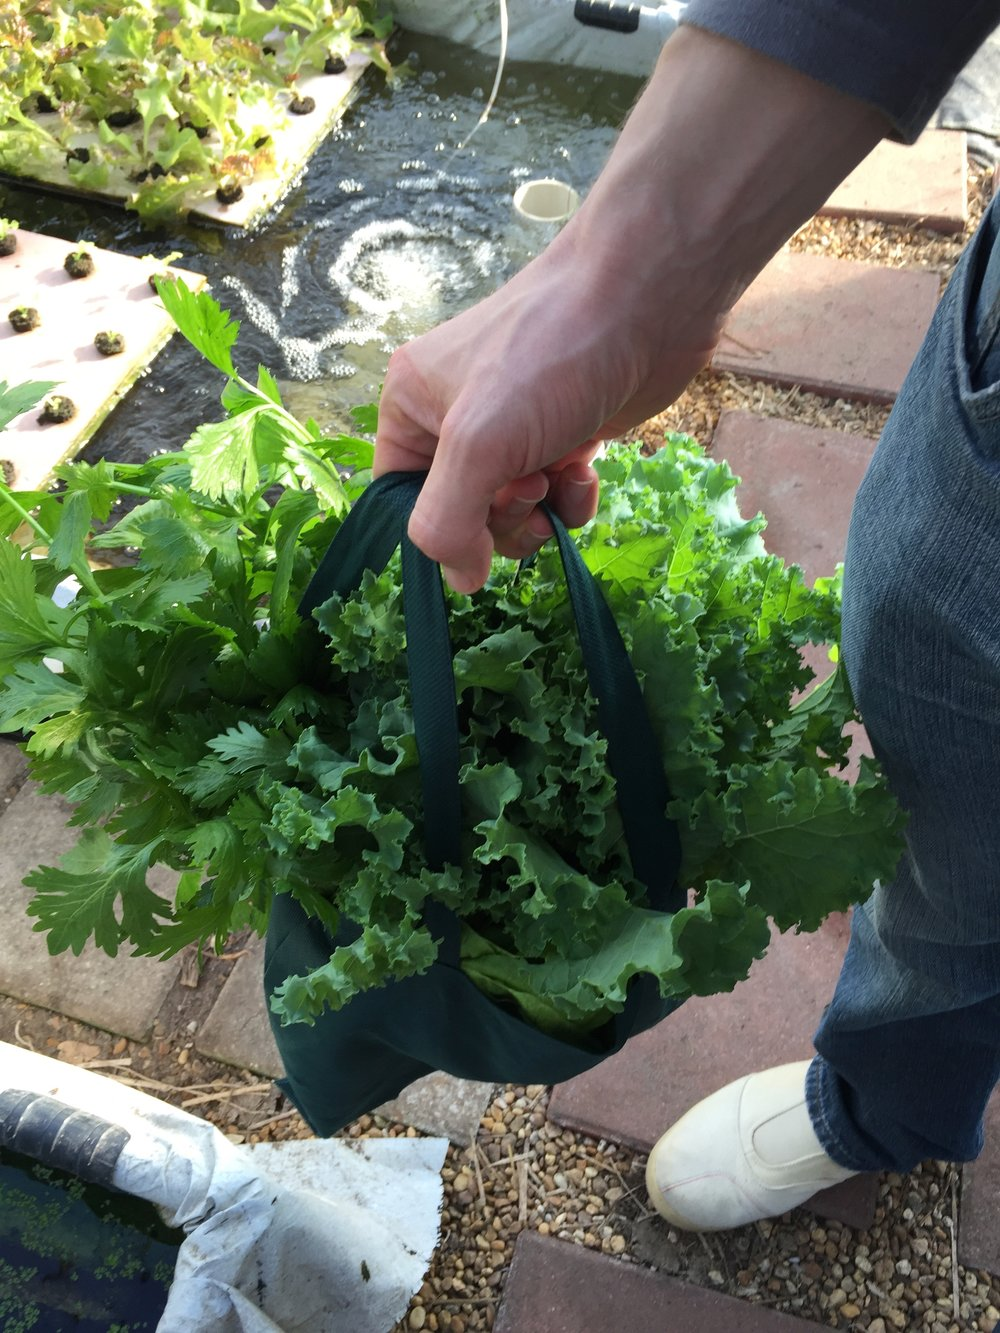 Our delicious goody bag we took home with us. It was packed full of Kale, Bok Choy and Celery!